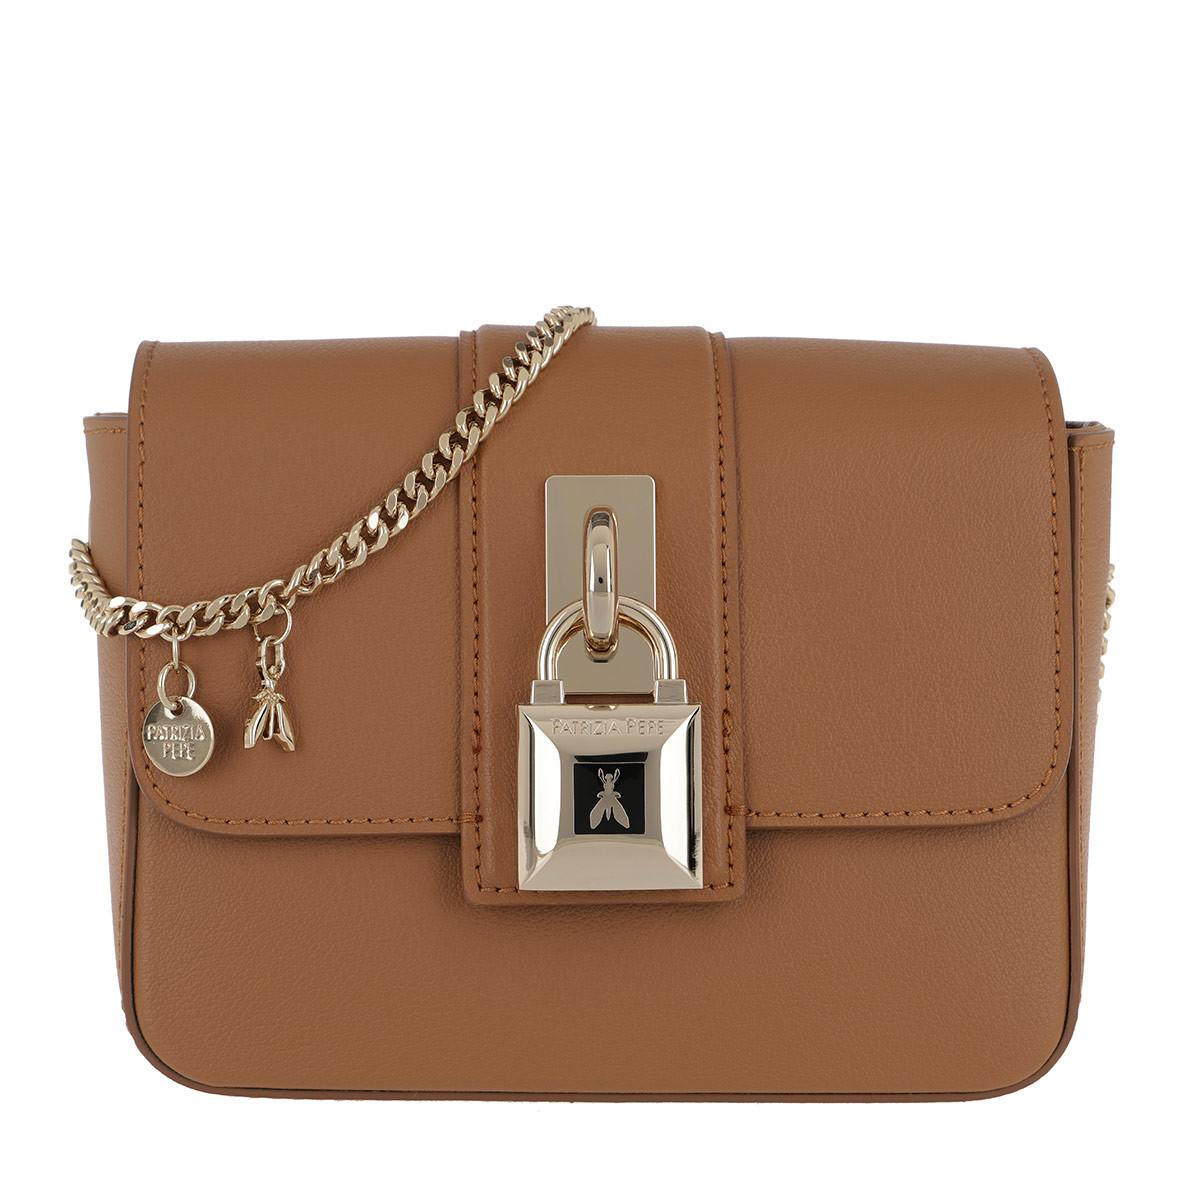 dc344c9bf698 Patrizia Pepe - Locked Crossbody Bag Natural Beige - Lyst. View fullscreen